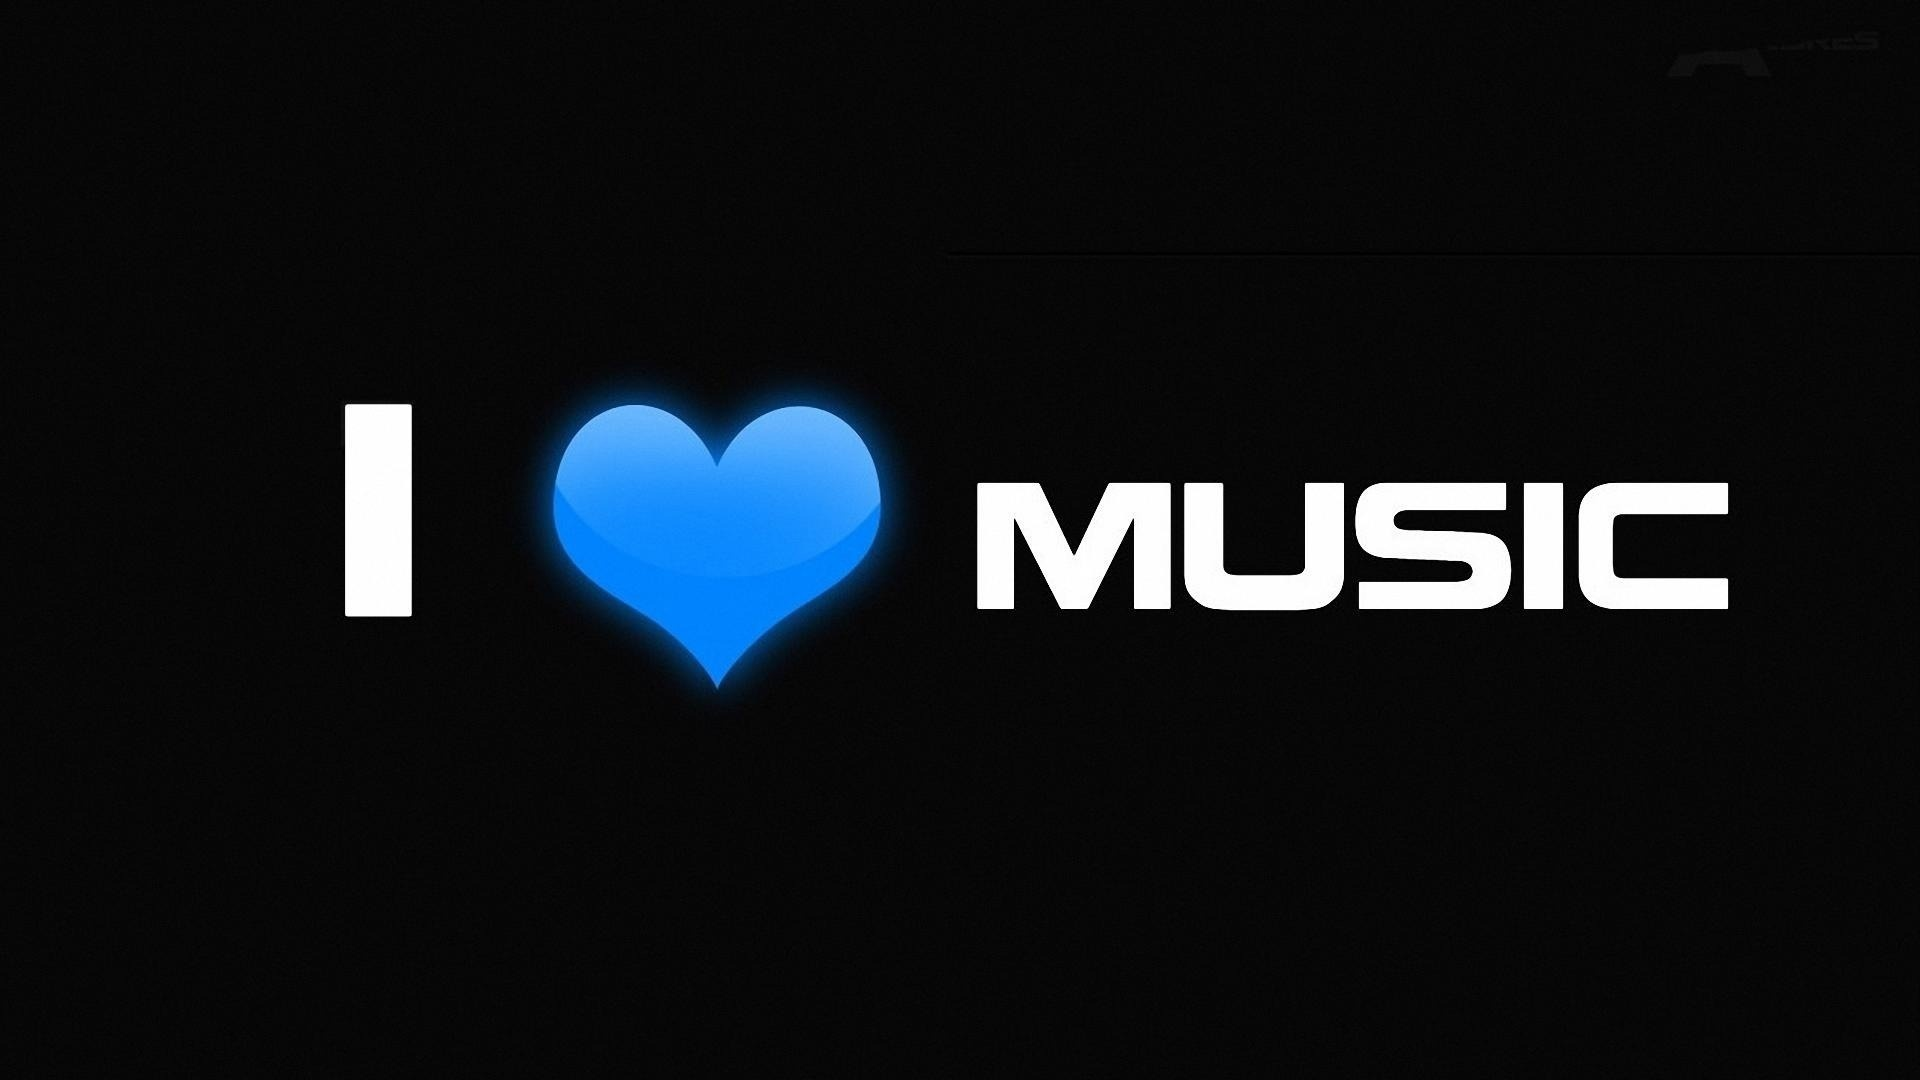 I Love Music Widescreen